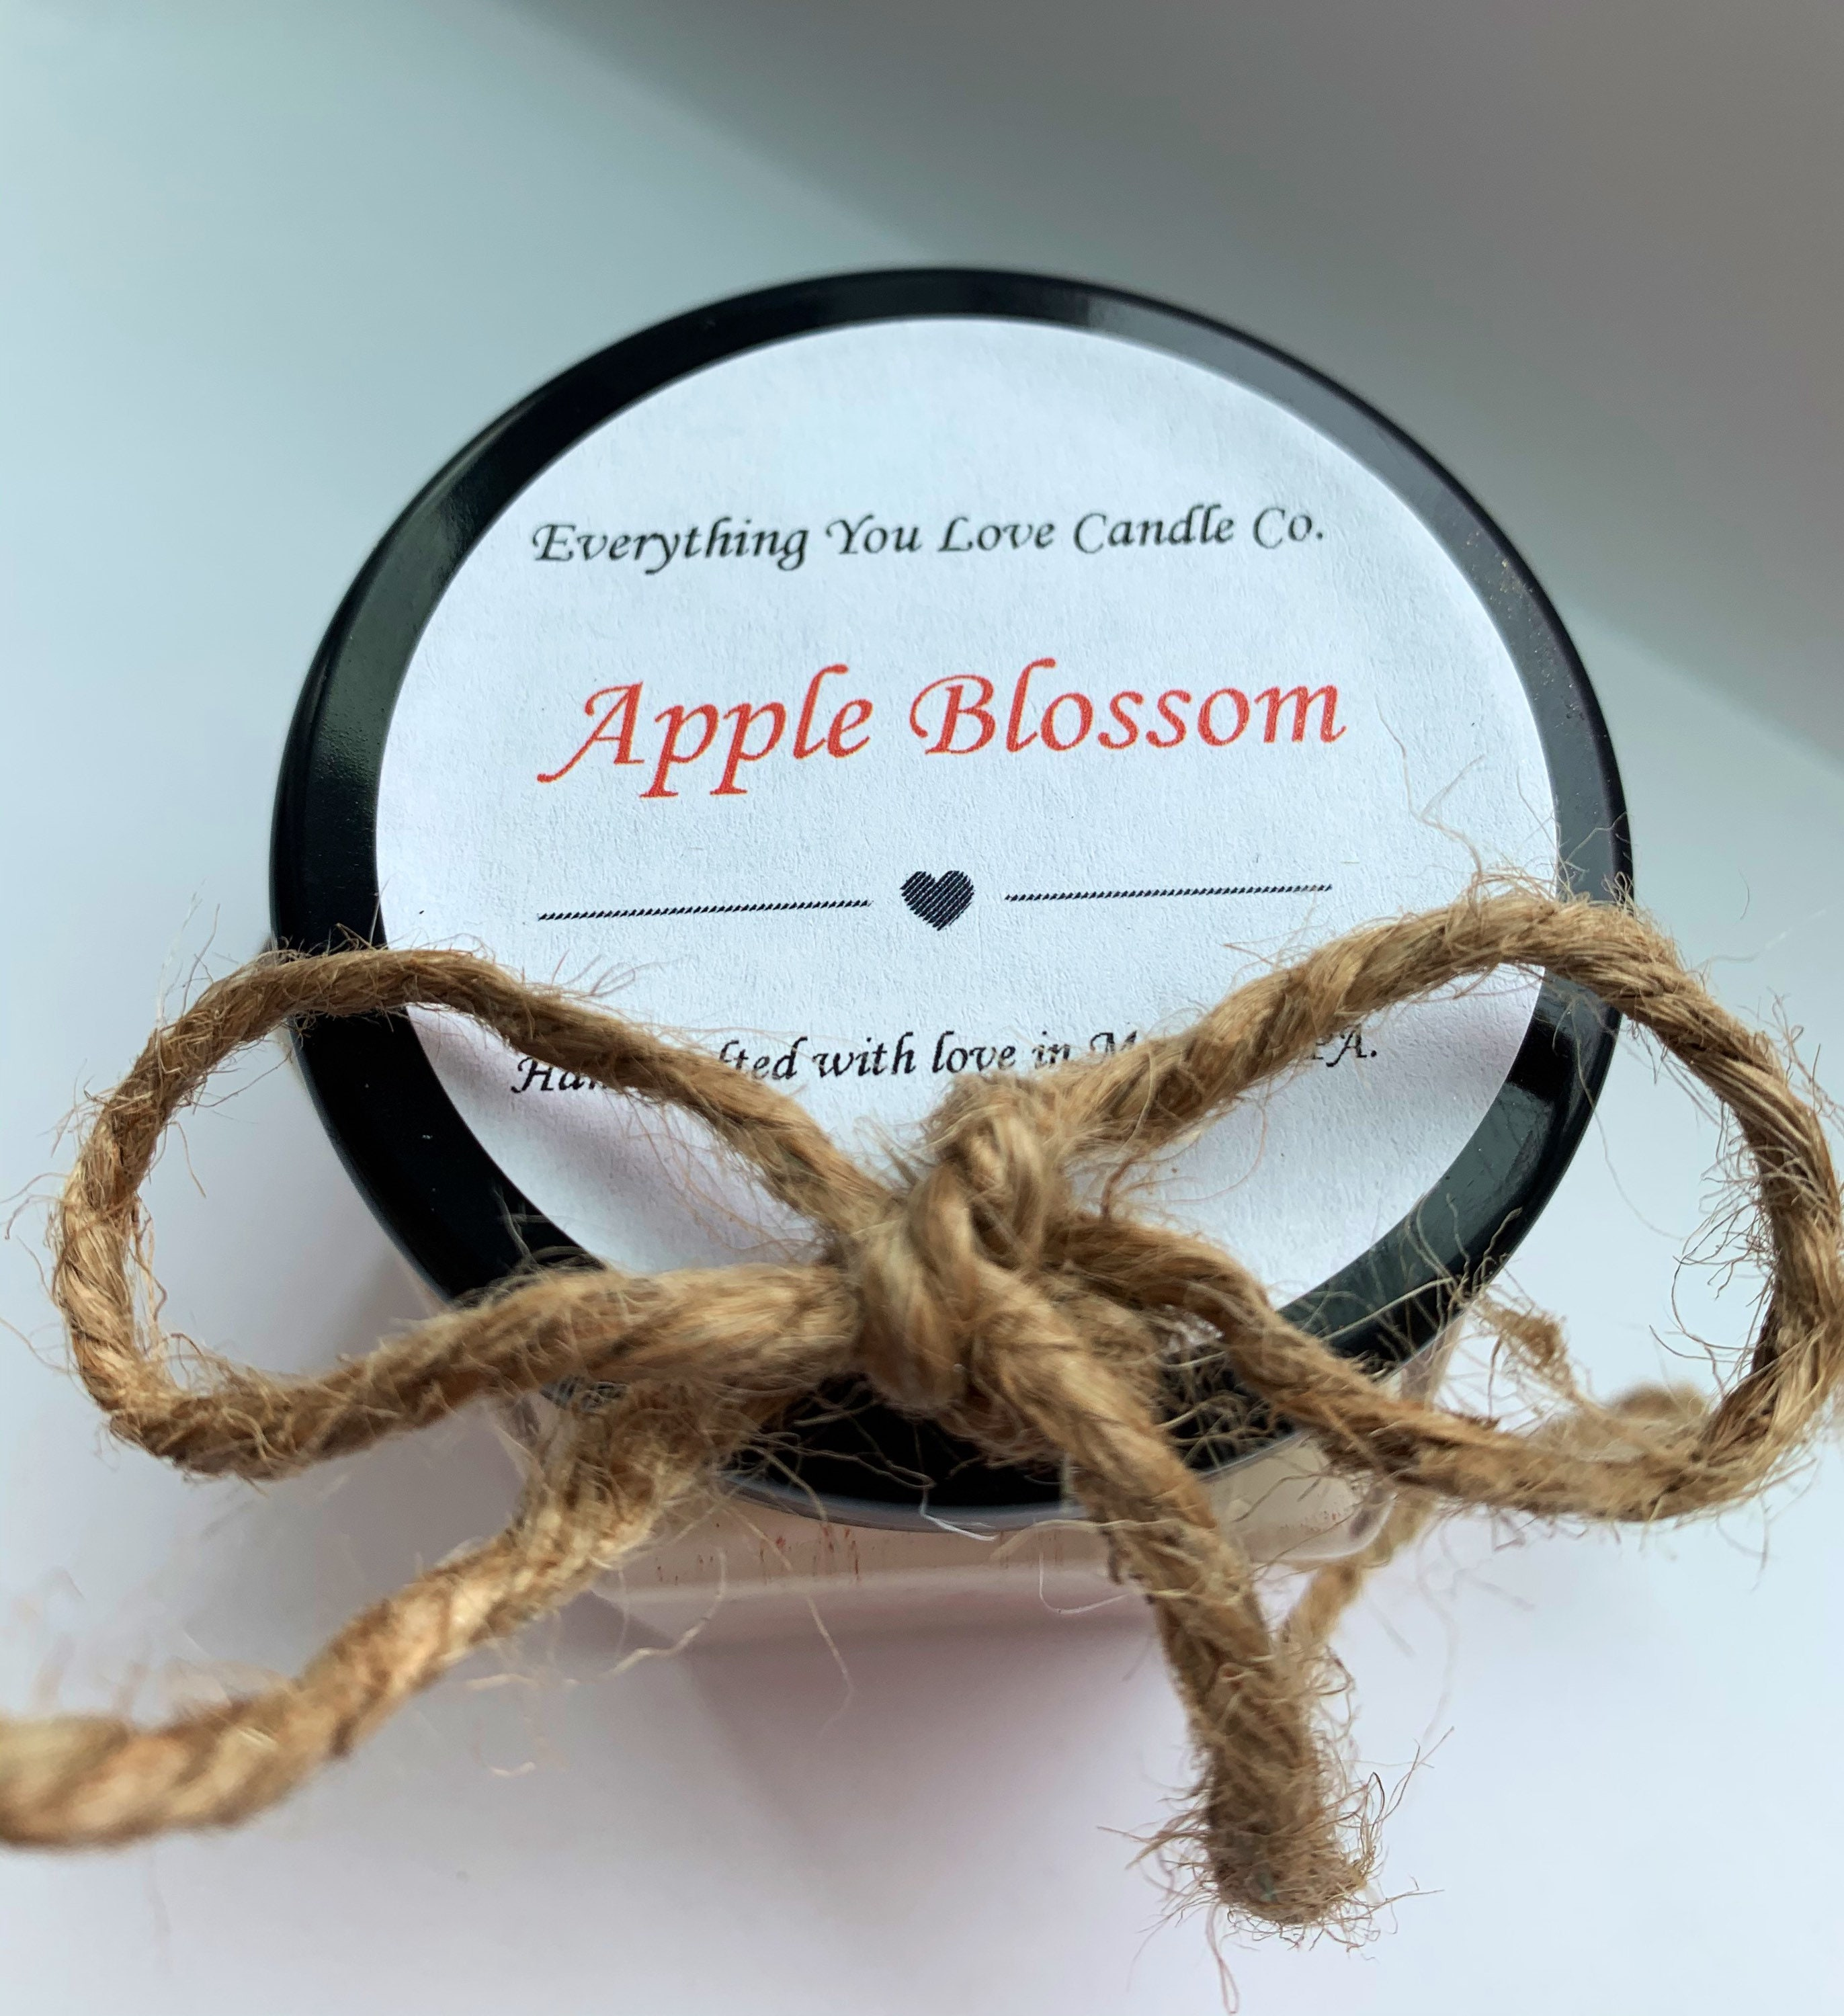 Apple Blossom 100% Soy 4oz Bougie avec glitter biodégradable